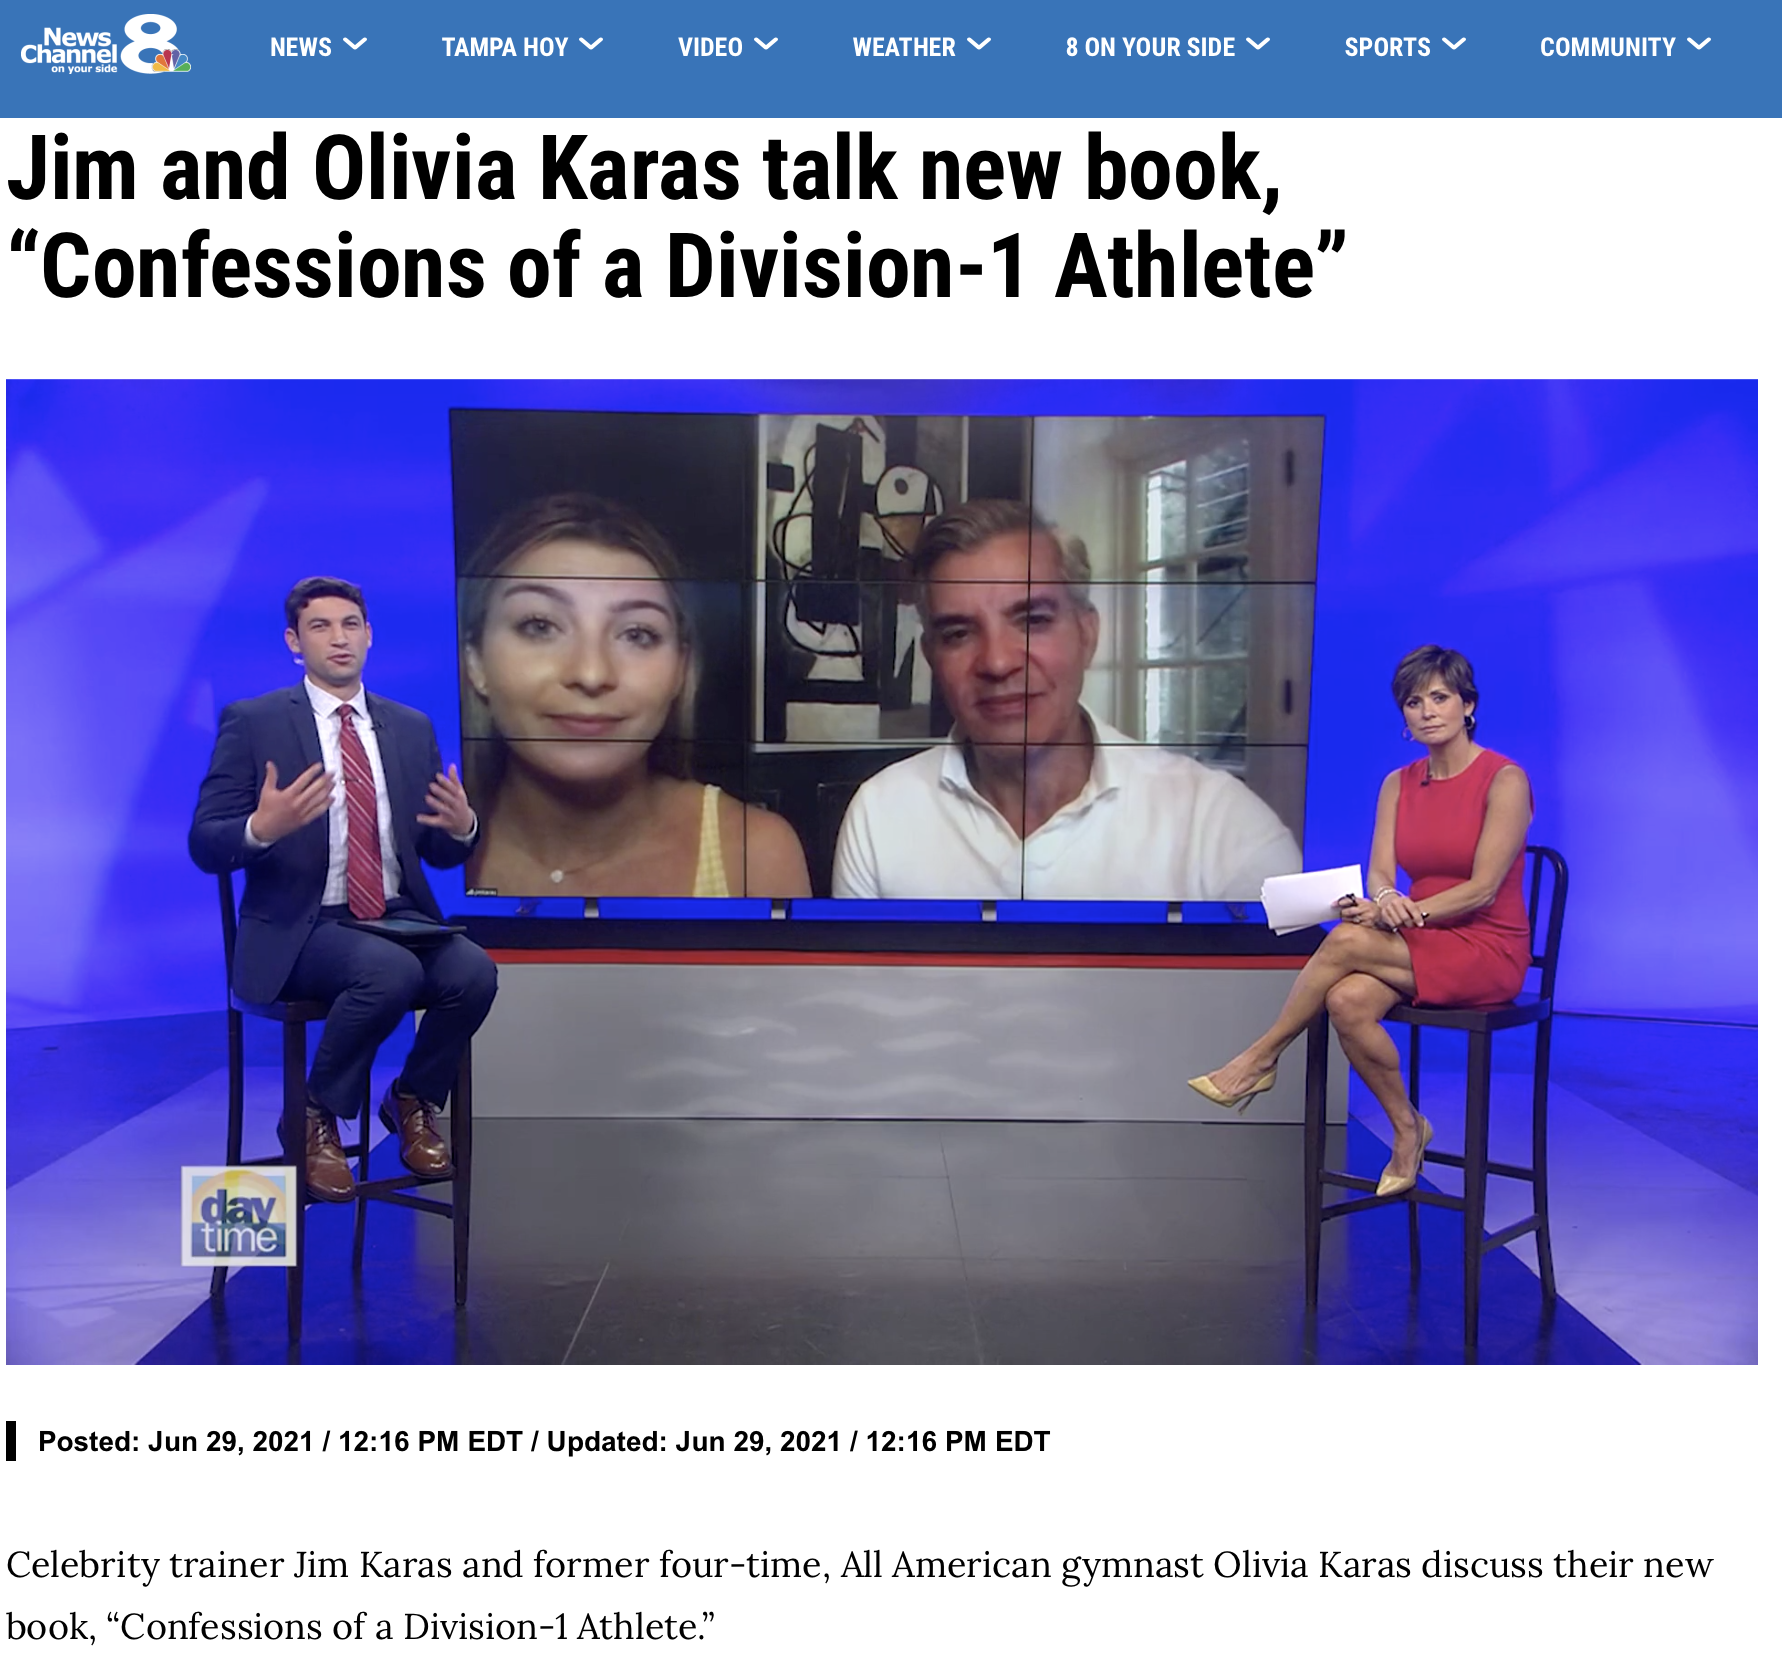 """Jim and Olivia Karas talk new book, """"Confessions of a Division-1 Athlete"""""""